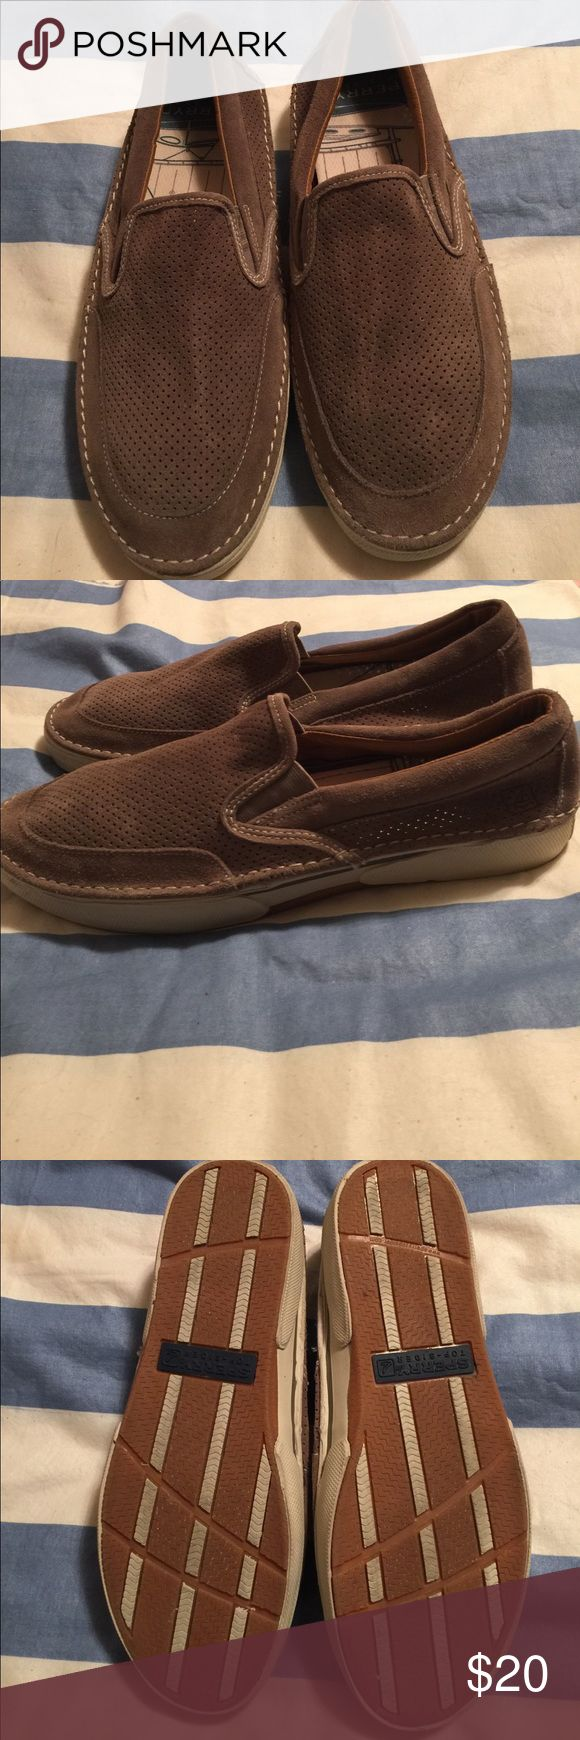 👞SALE👞Sperry Topsider shoes Size 12 Mens Tan Sperrys. Worn once and in closet for a while. Has one flaw and picture is included ( small separation of side of sole to cloth. It does not go all the way and make a hole) Sperry Shoes Loafers & Slip-Ons